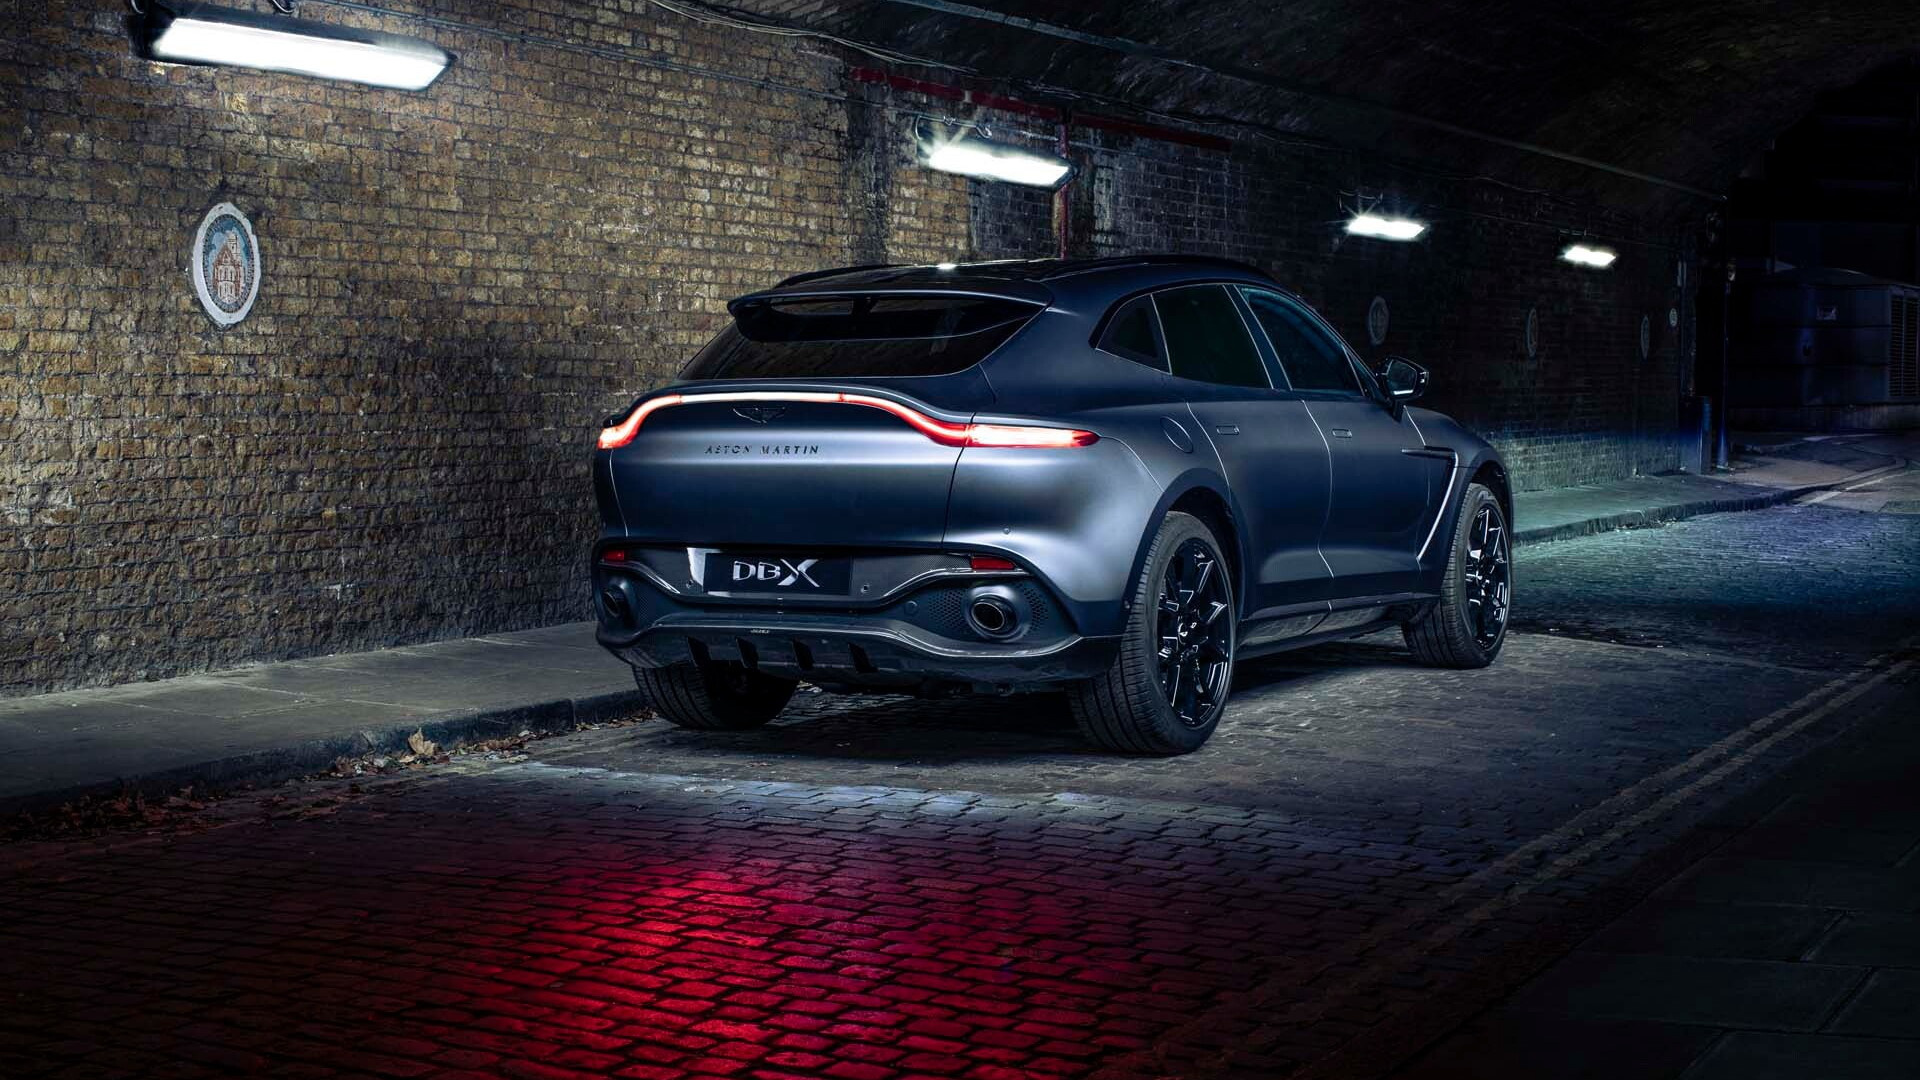 2021 Aston Martin DBX personalized by Q by Aston Martin